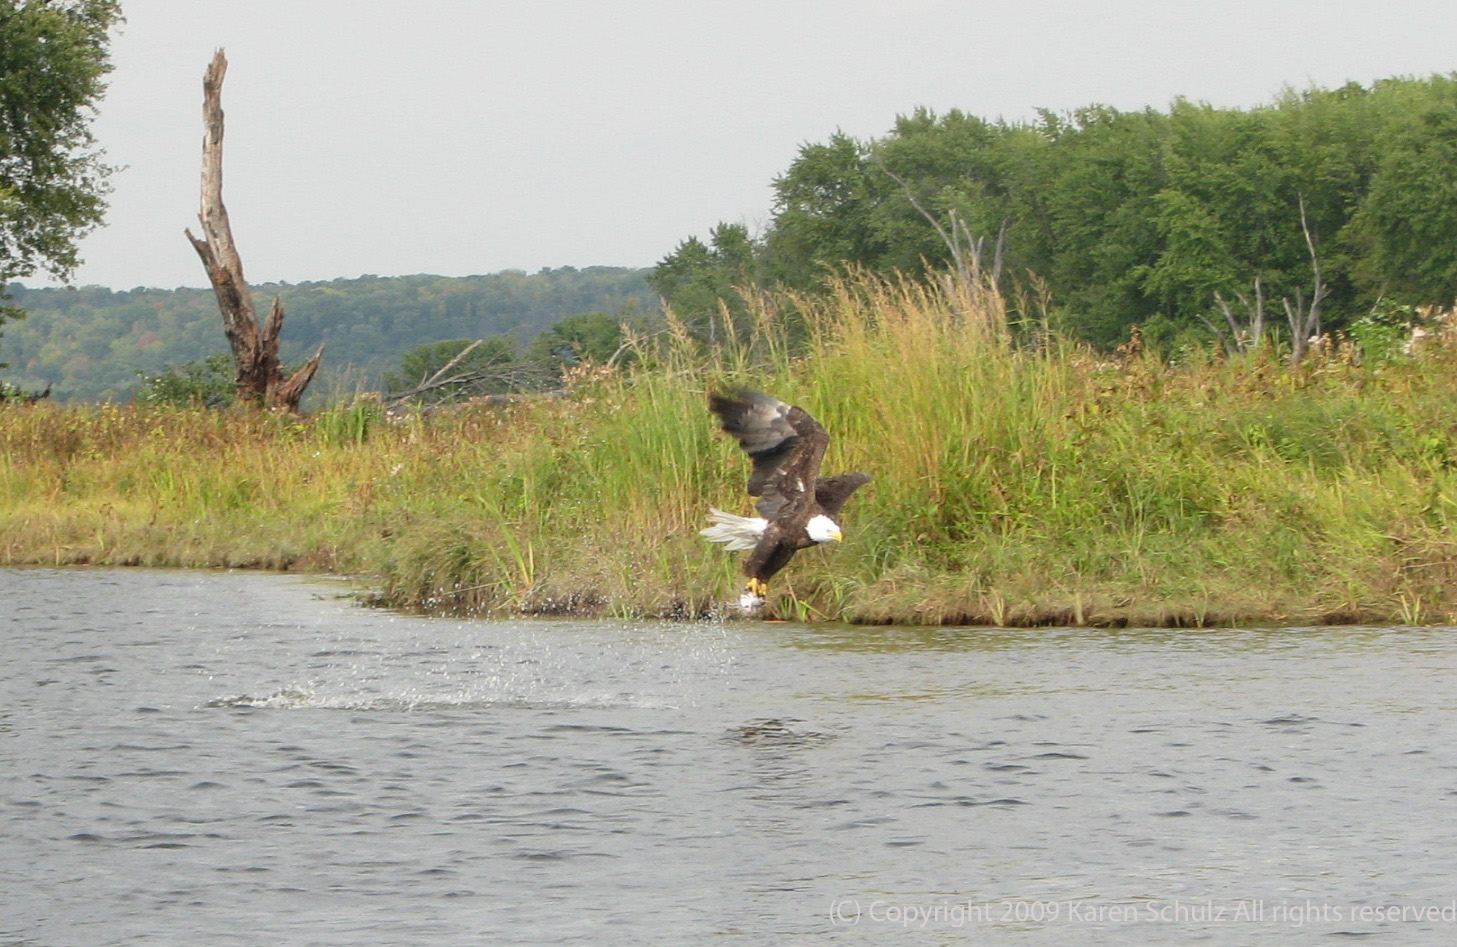 A North American Bald Eagle fishing (and catching) on the St. Croix River near Stillwater MN - via www.karenofarcola.com